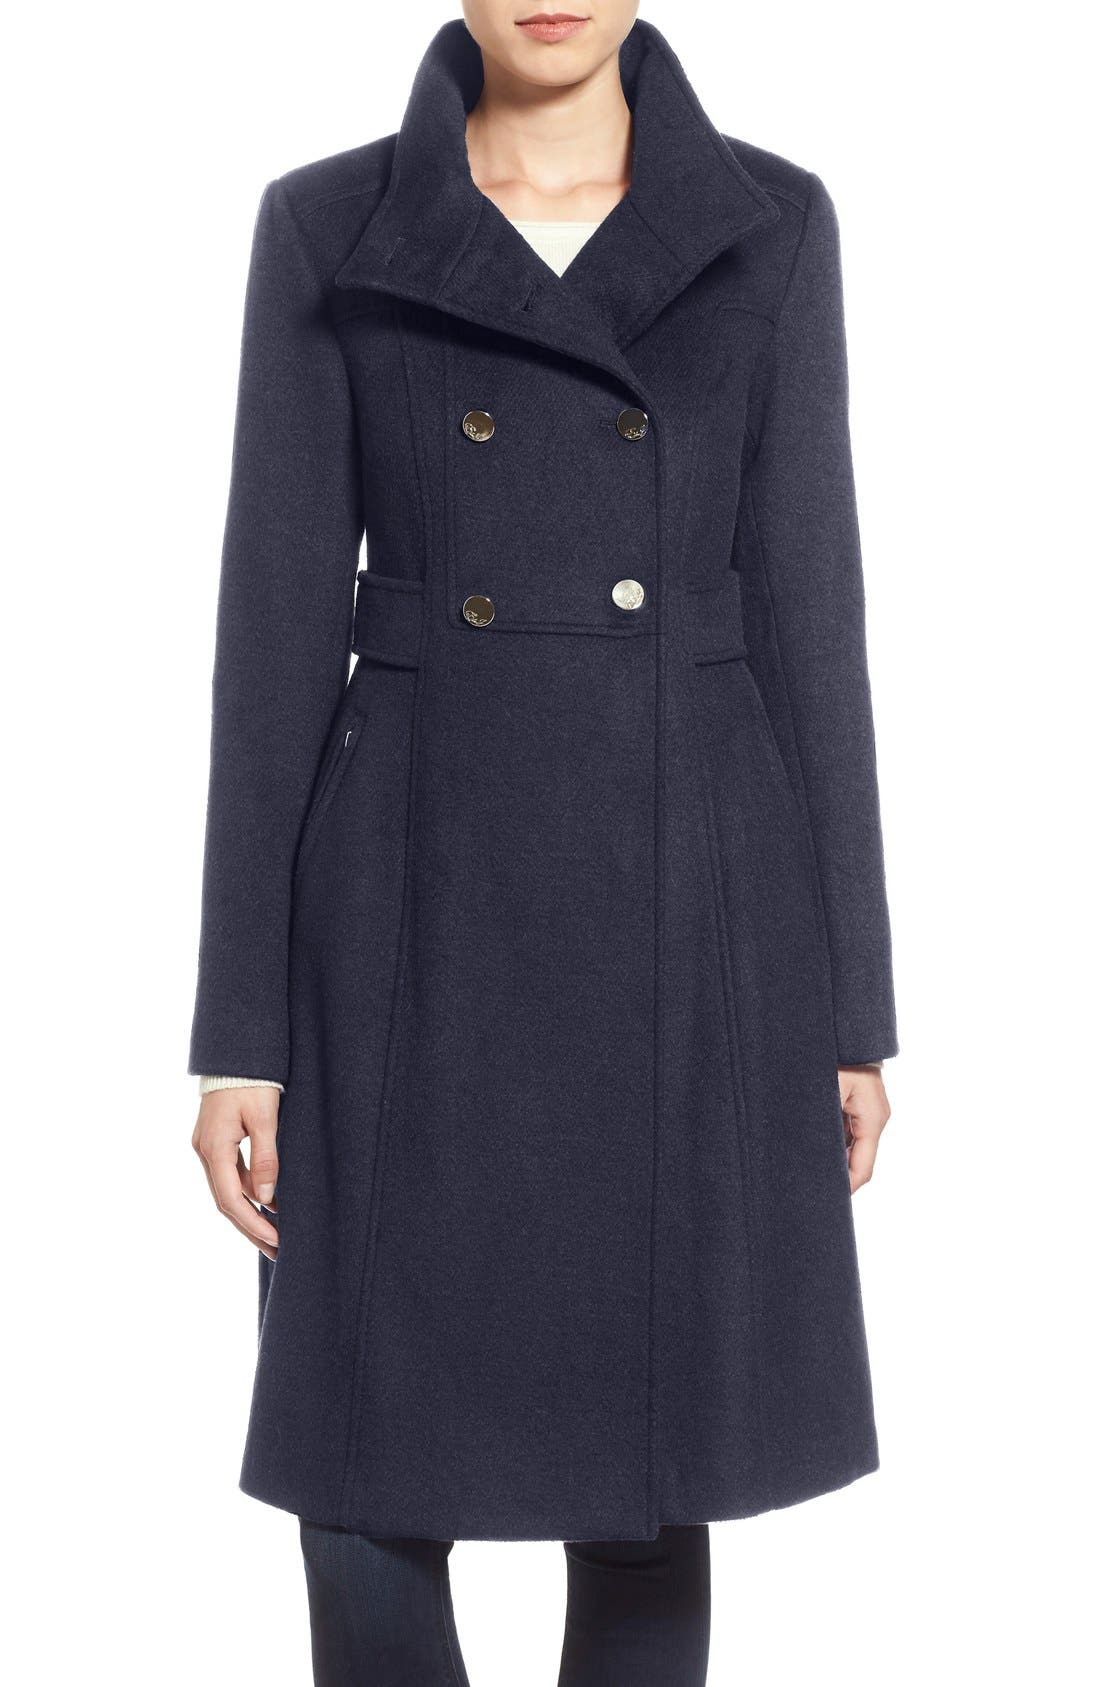 Eliza J Wool Blend Long Military Coat (Regular & Petite)